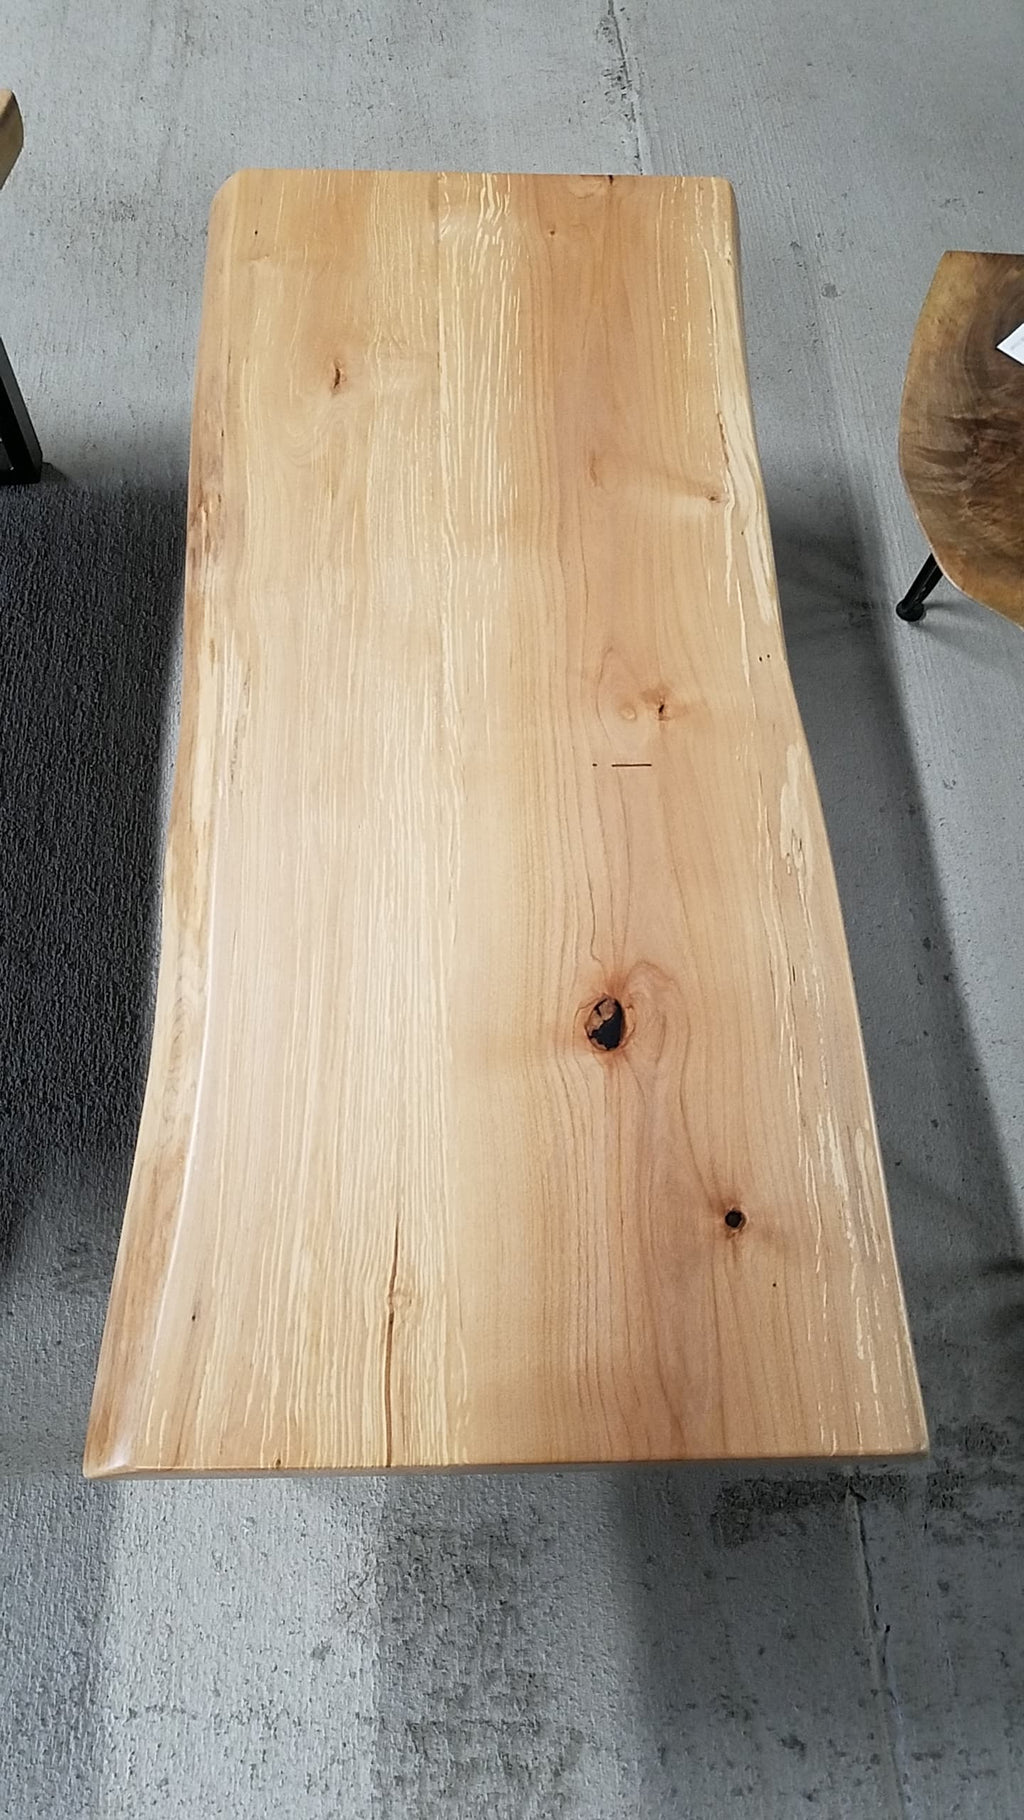 Maple Live Edge Coffee Table - free shipping to U.S